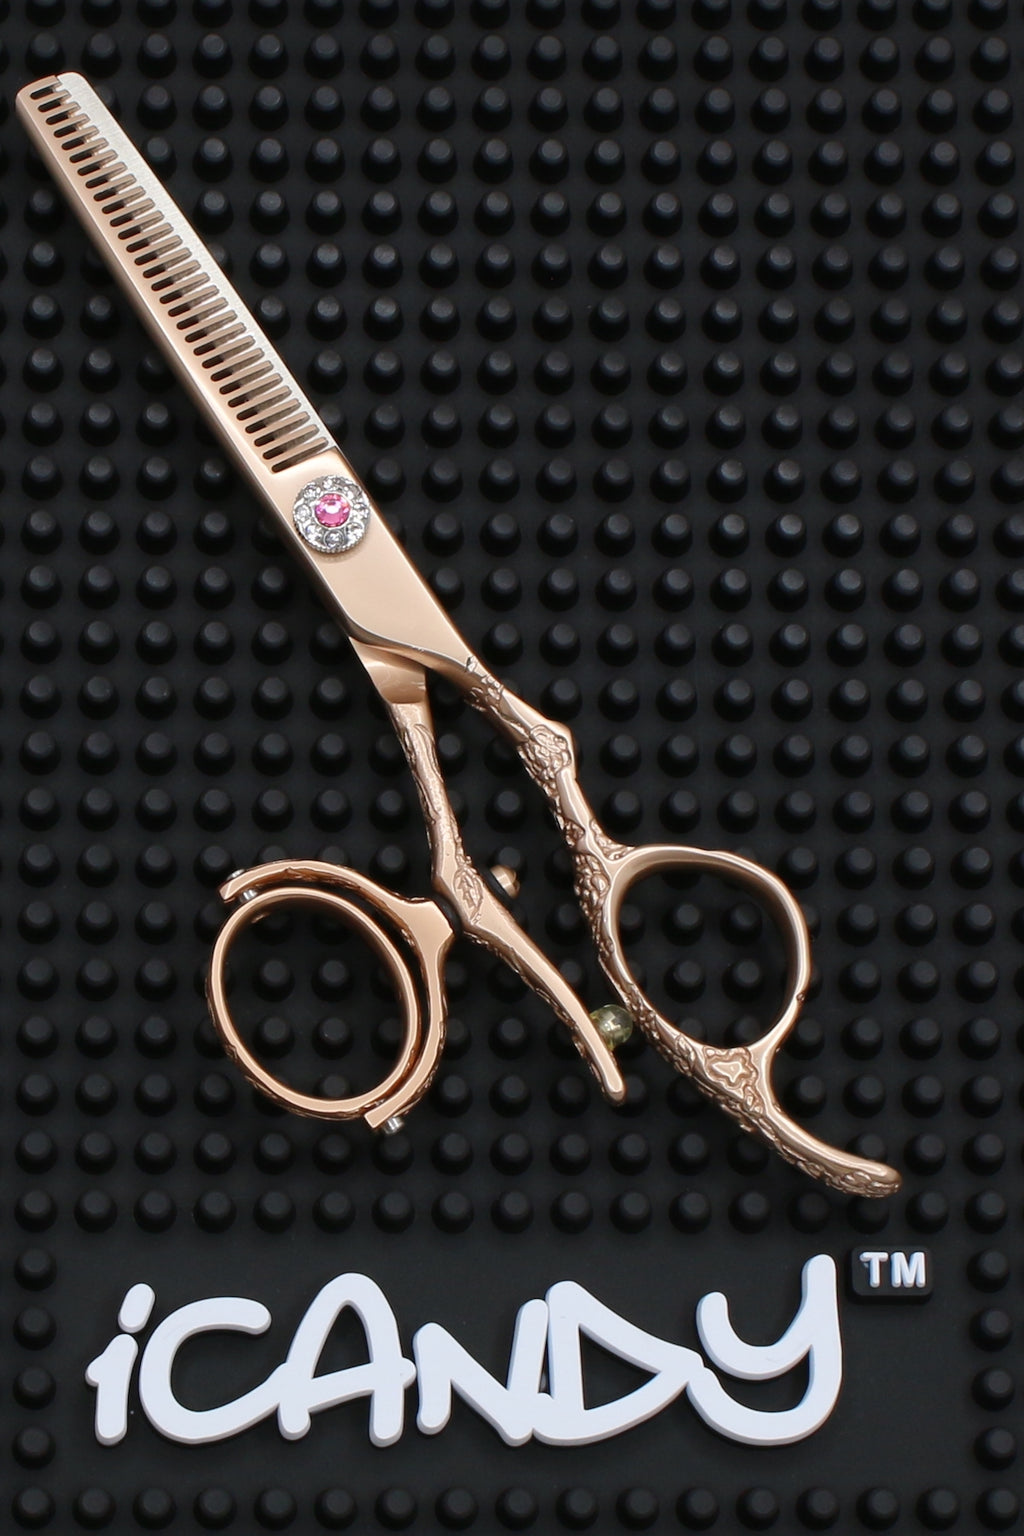 iCandy Dream Rose Gold Swivel-T Thinning Scissors - Limited Edition ! (5.5 inch) - iCandy Scissors